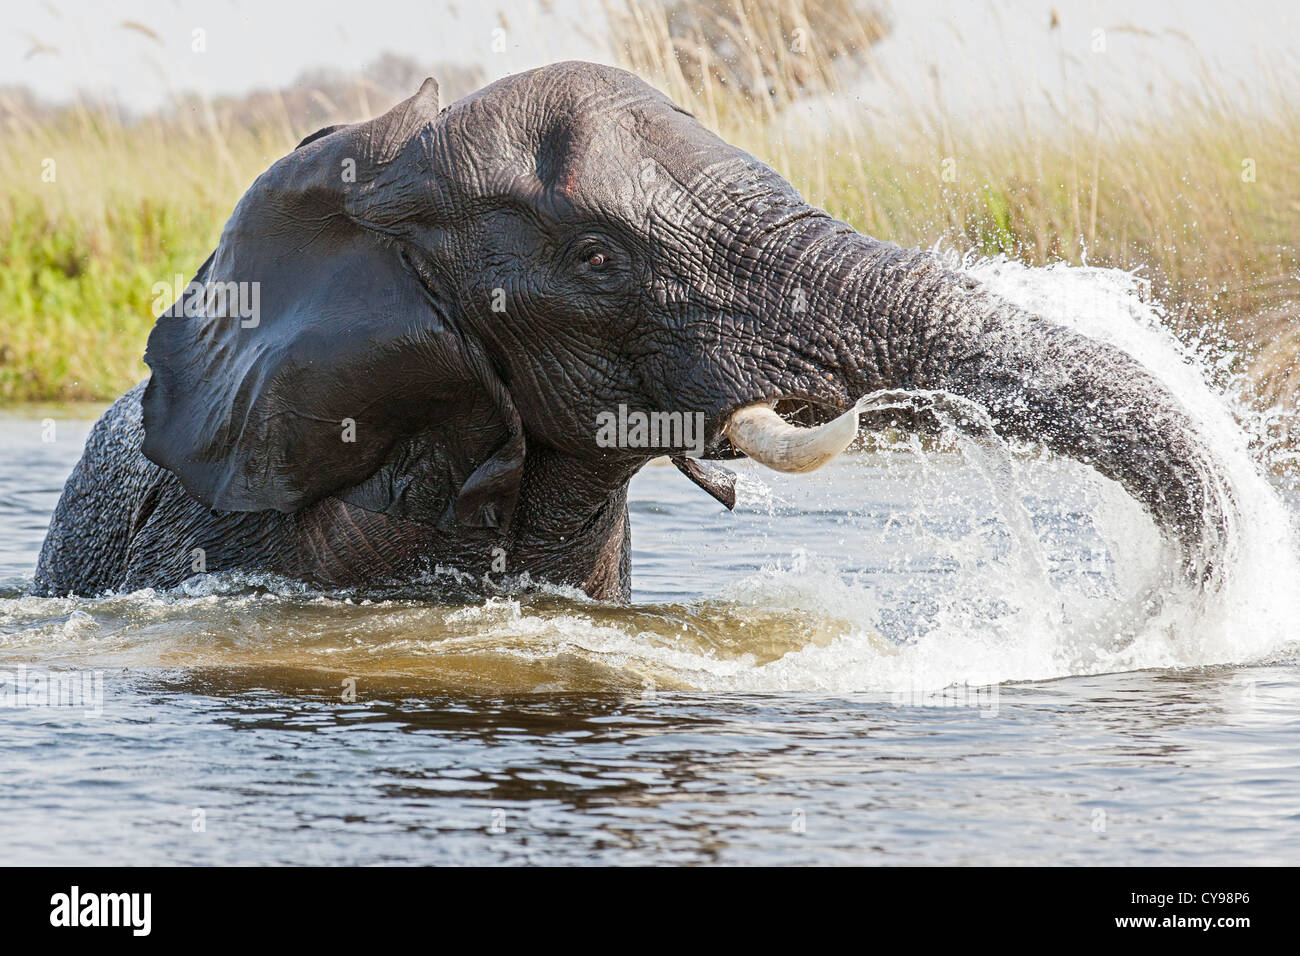 Close-up of an African elephant (Loxodonta africana) playing in the water channels of the Okavango delta - Stock Image